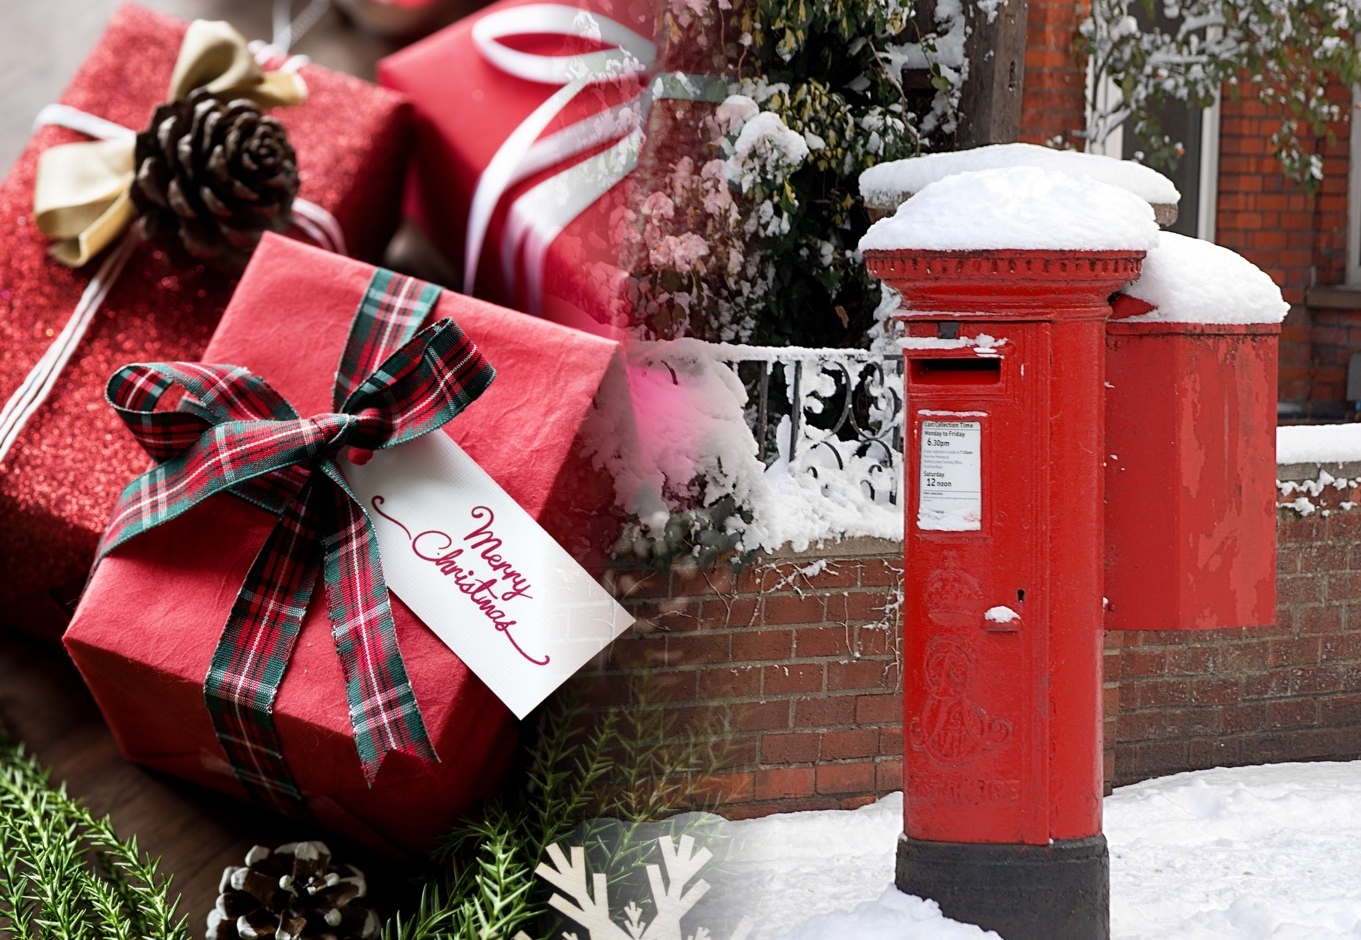 The last date for first-class mail within the UK is December 20.